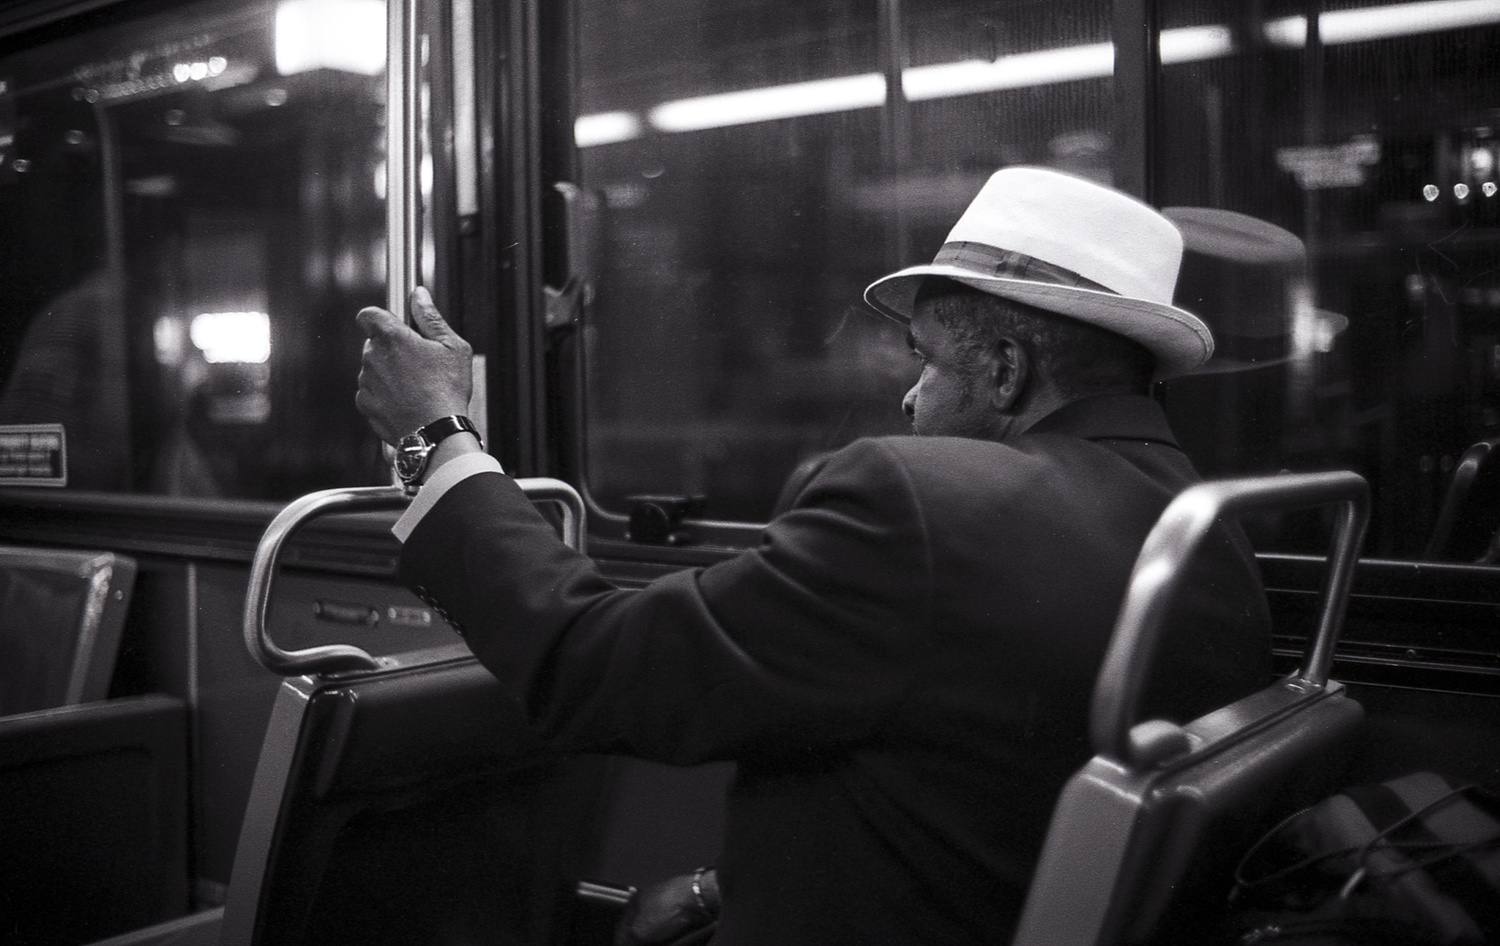 In new york youll often see people dressed like they are from another era again black and white provides a mystery for the era he could be from